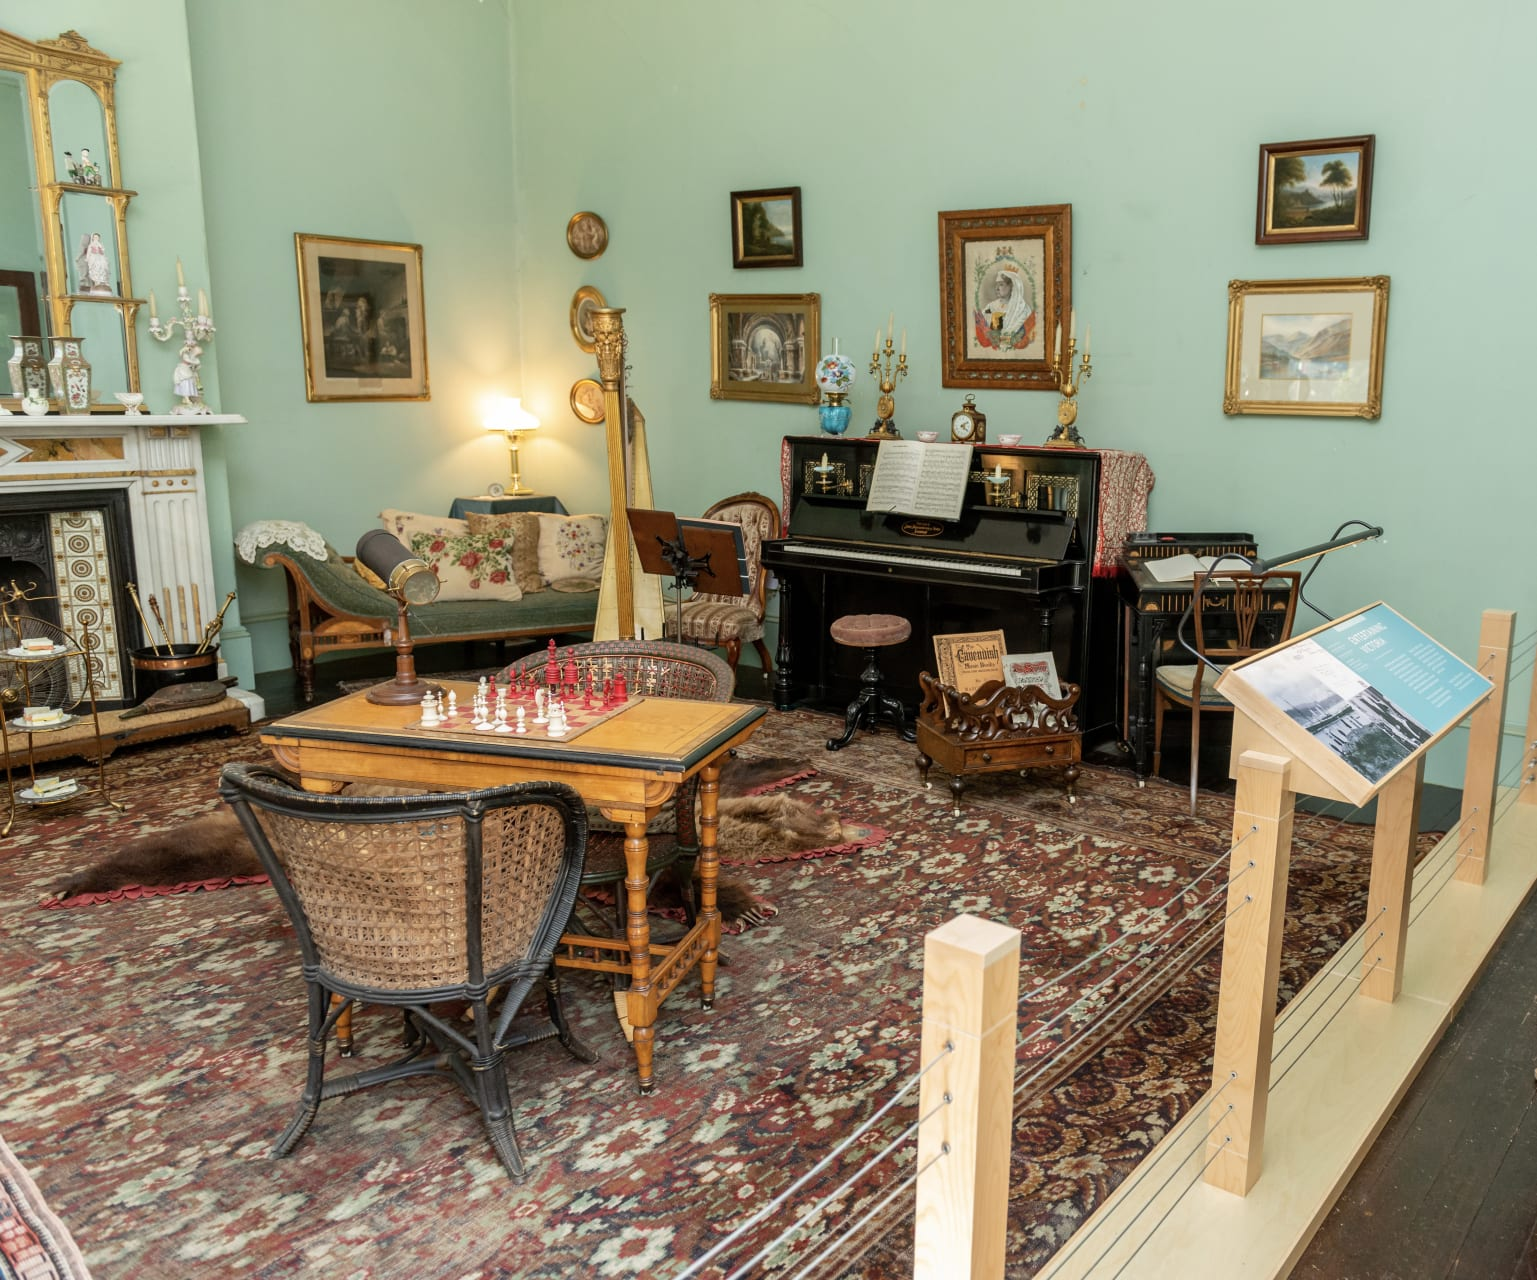 Victoria, BC - Point Ellice House: A Fully Preserved Victorian Legacy, Frozen in time